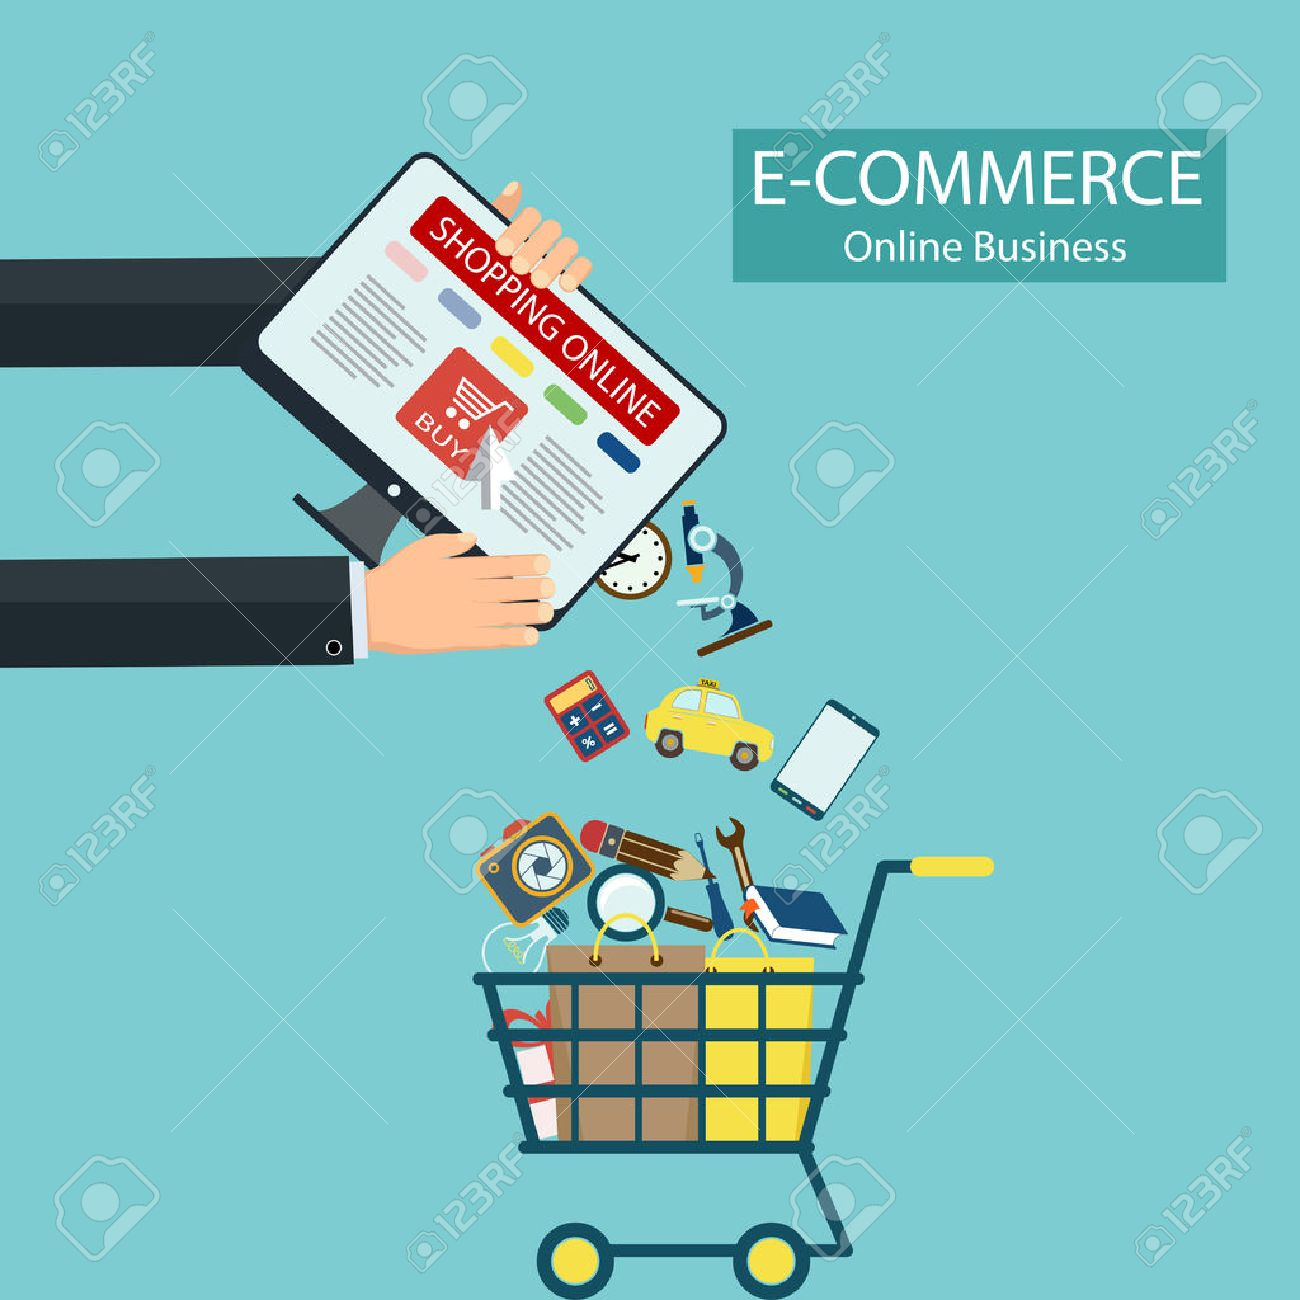 E-commerce. Shopping online. Computer and goods in the shopping cart. Stock vector illustration. - 51837188